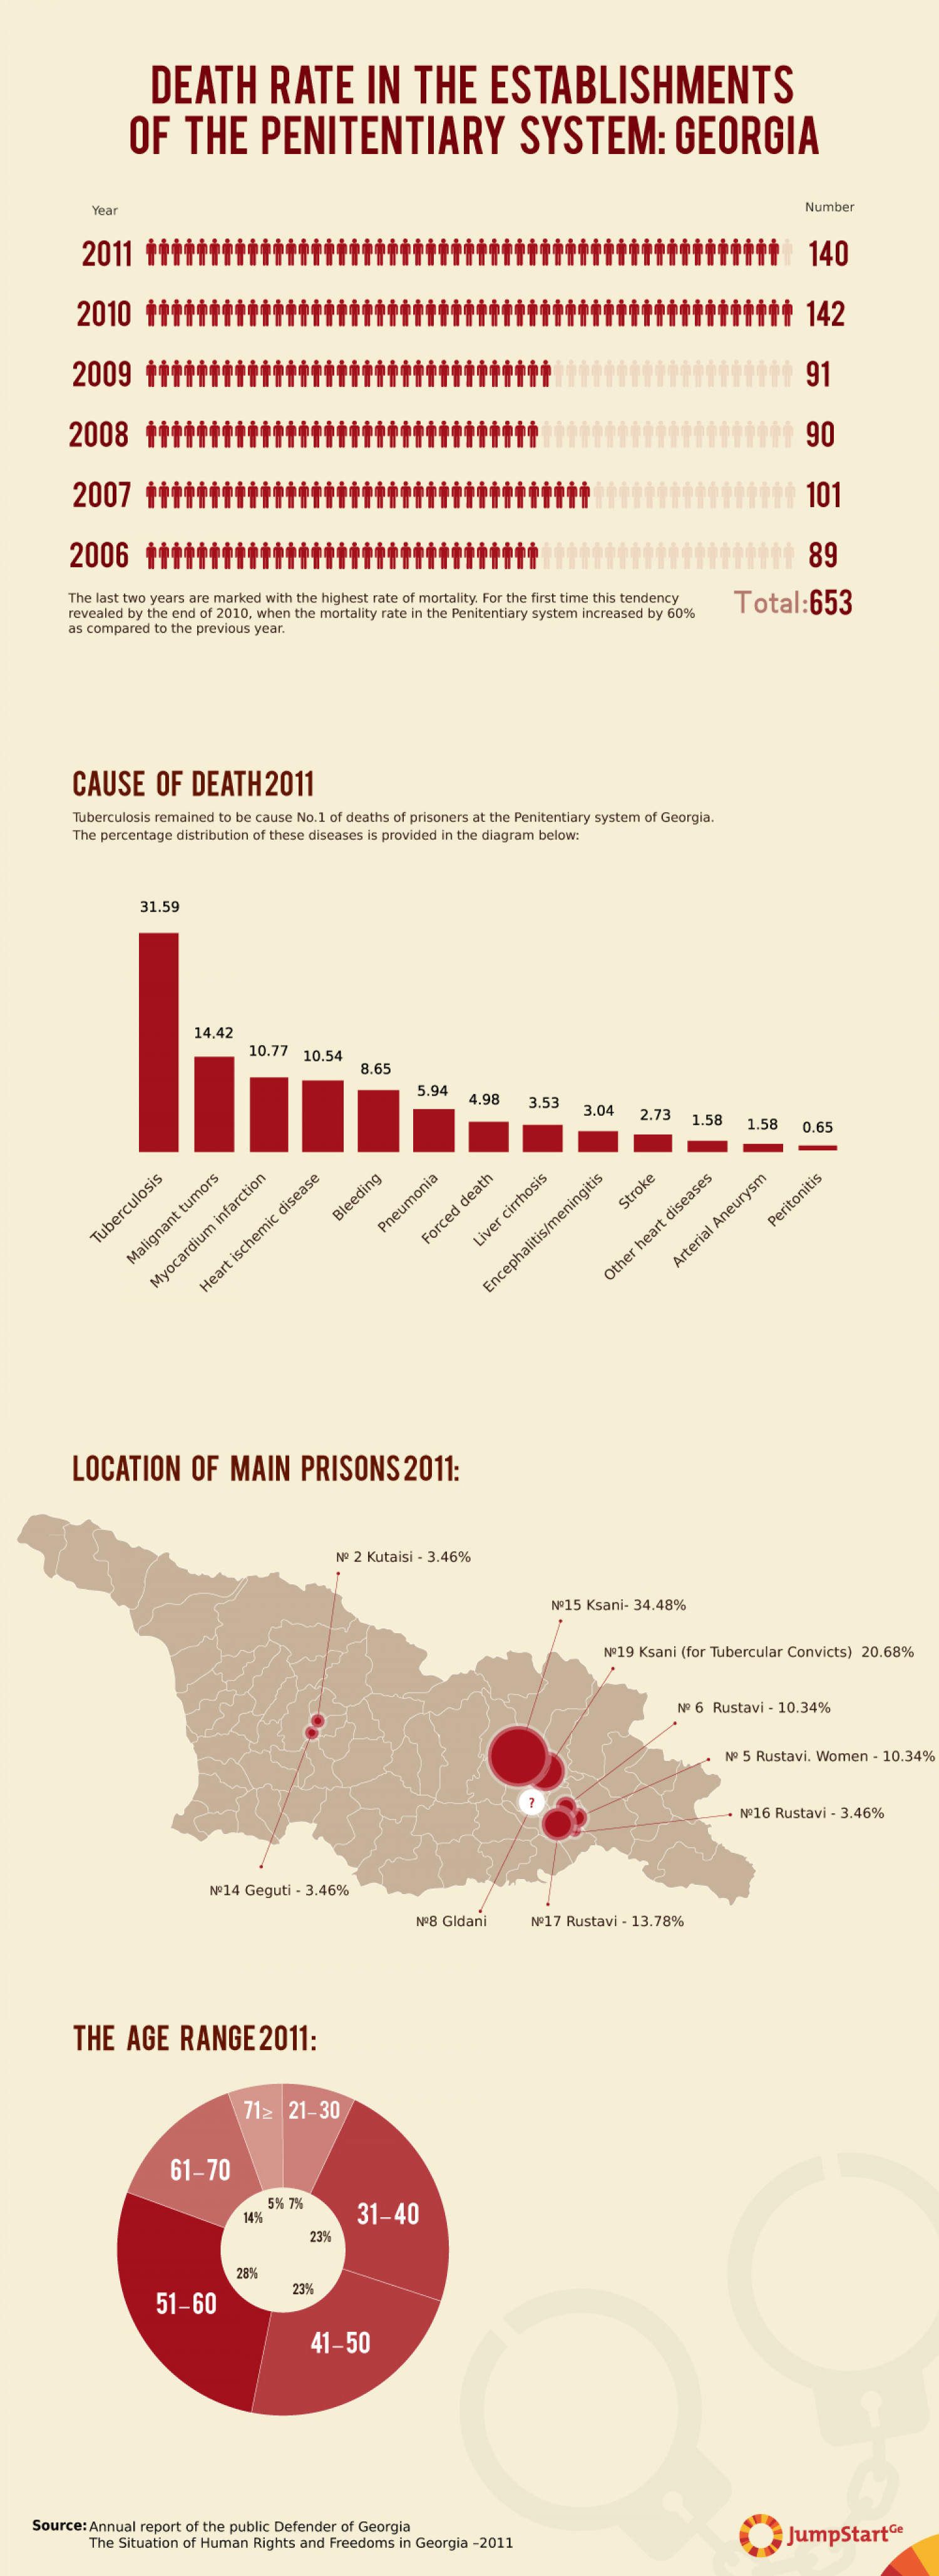 Death   Rate   in   the   Establishments  of   the   Penitentiary   System:  Georgia Infographic